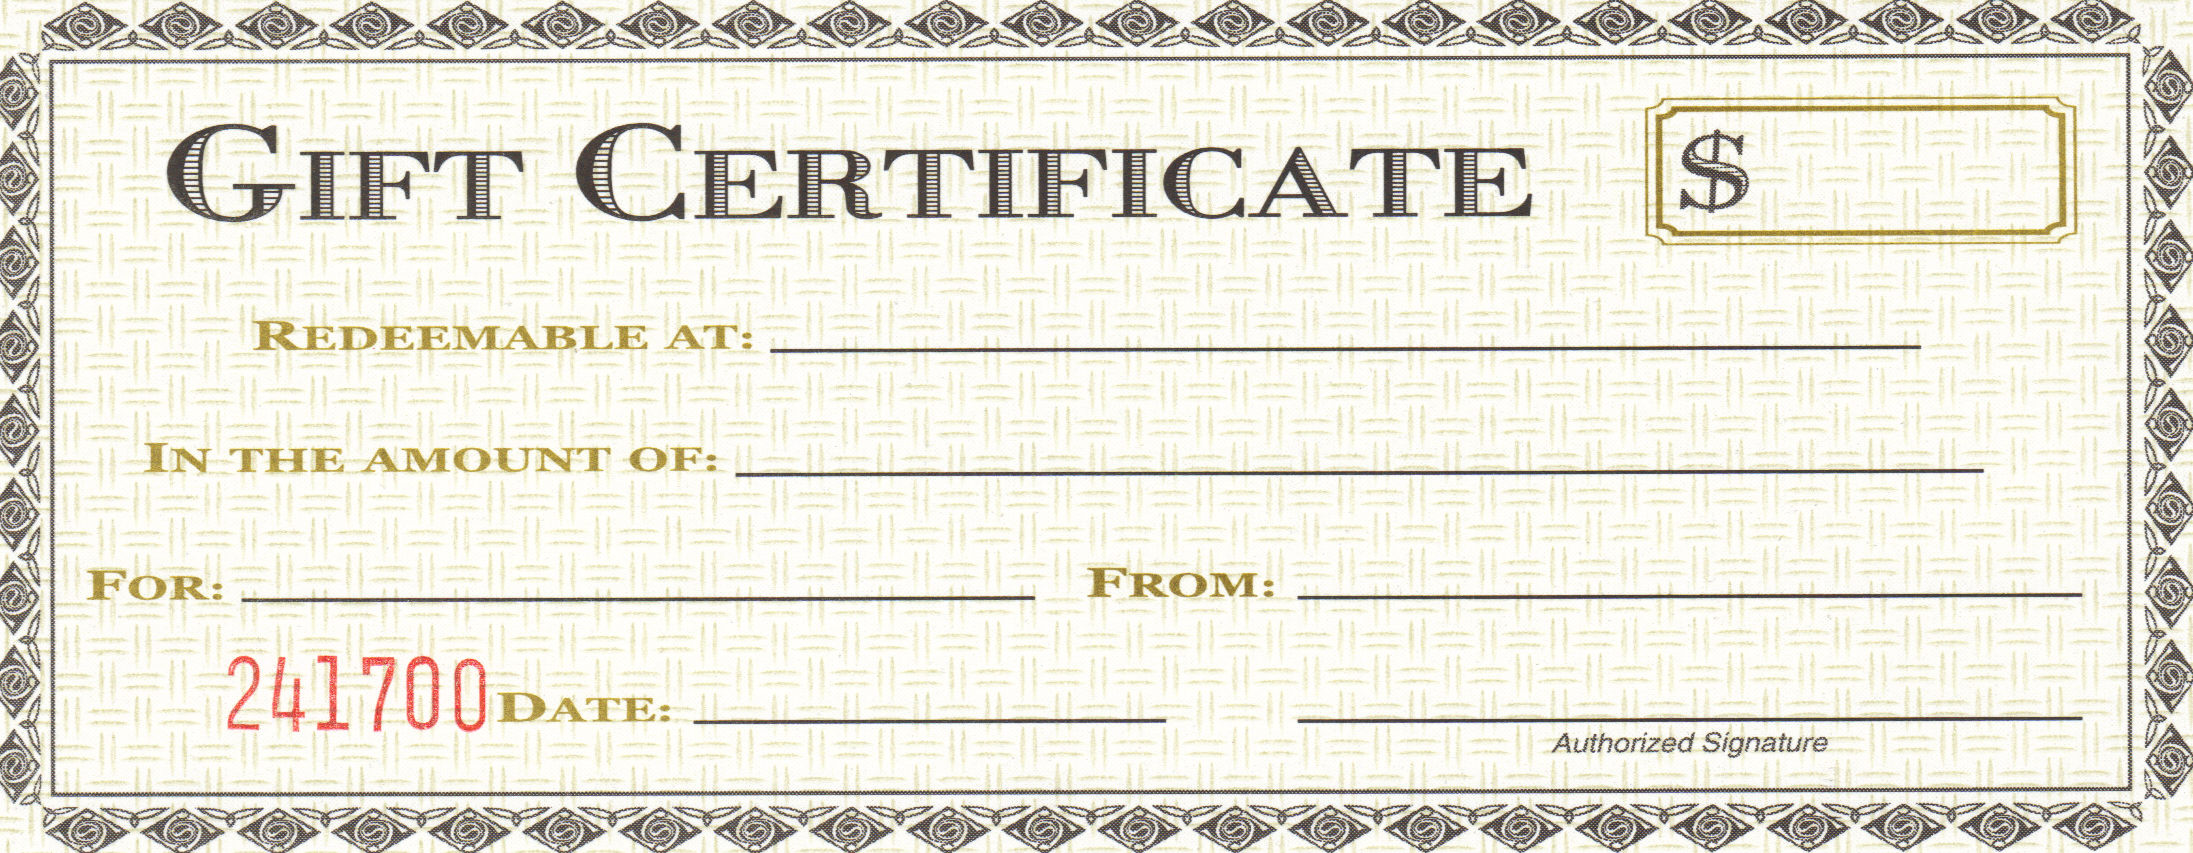 Free Printable Blank Gift Certificate Template - Printable Blank Gift ...